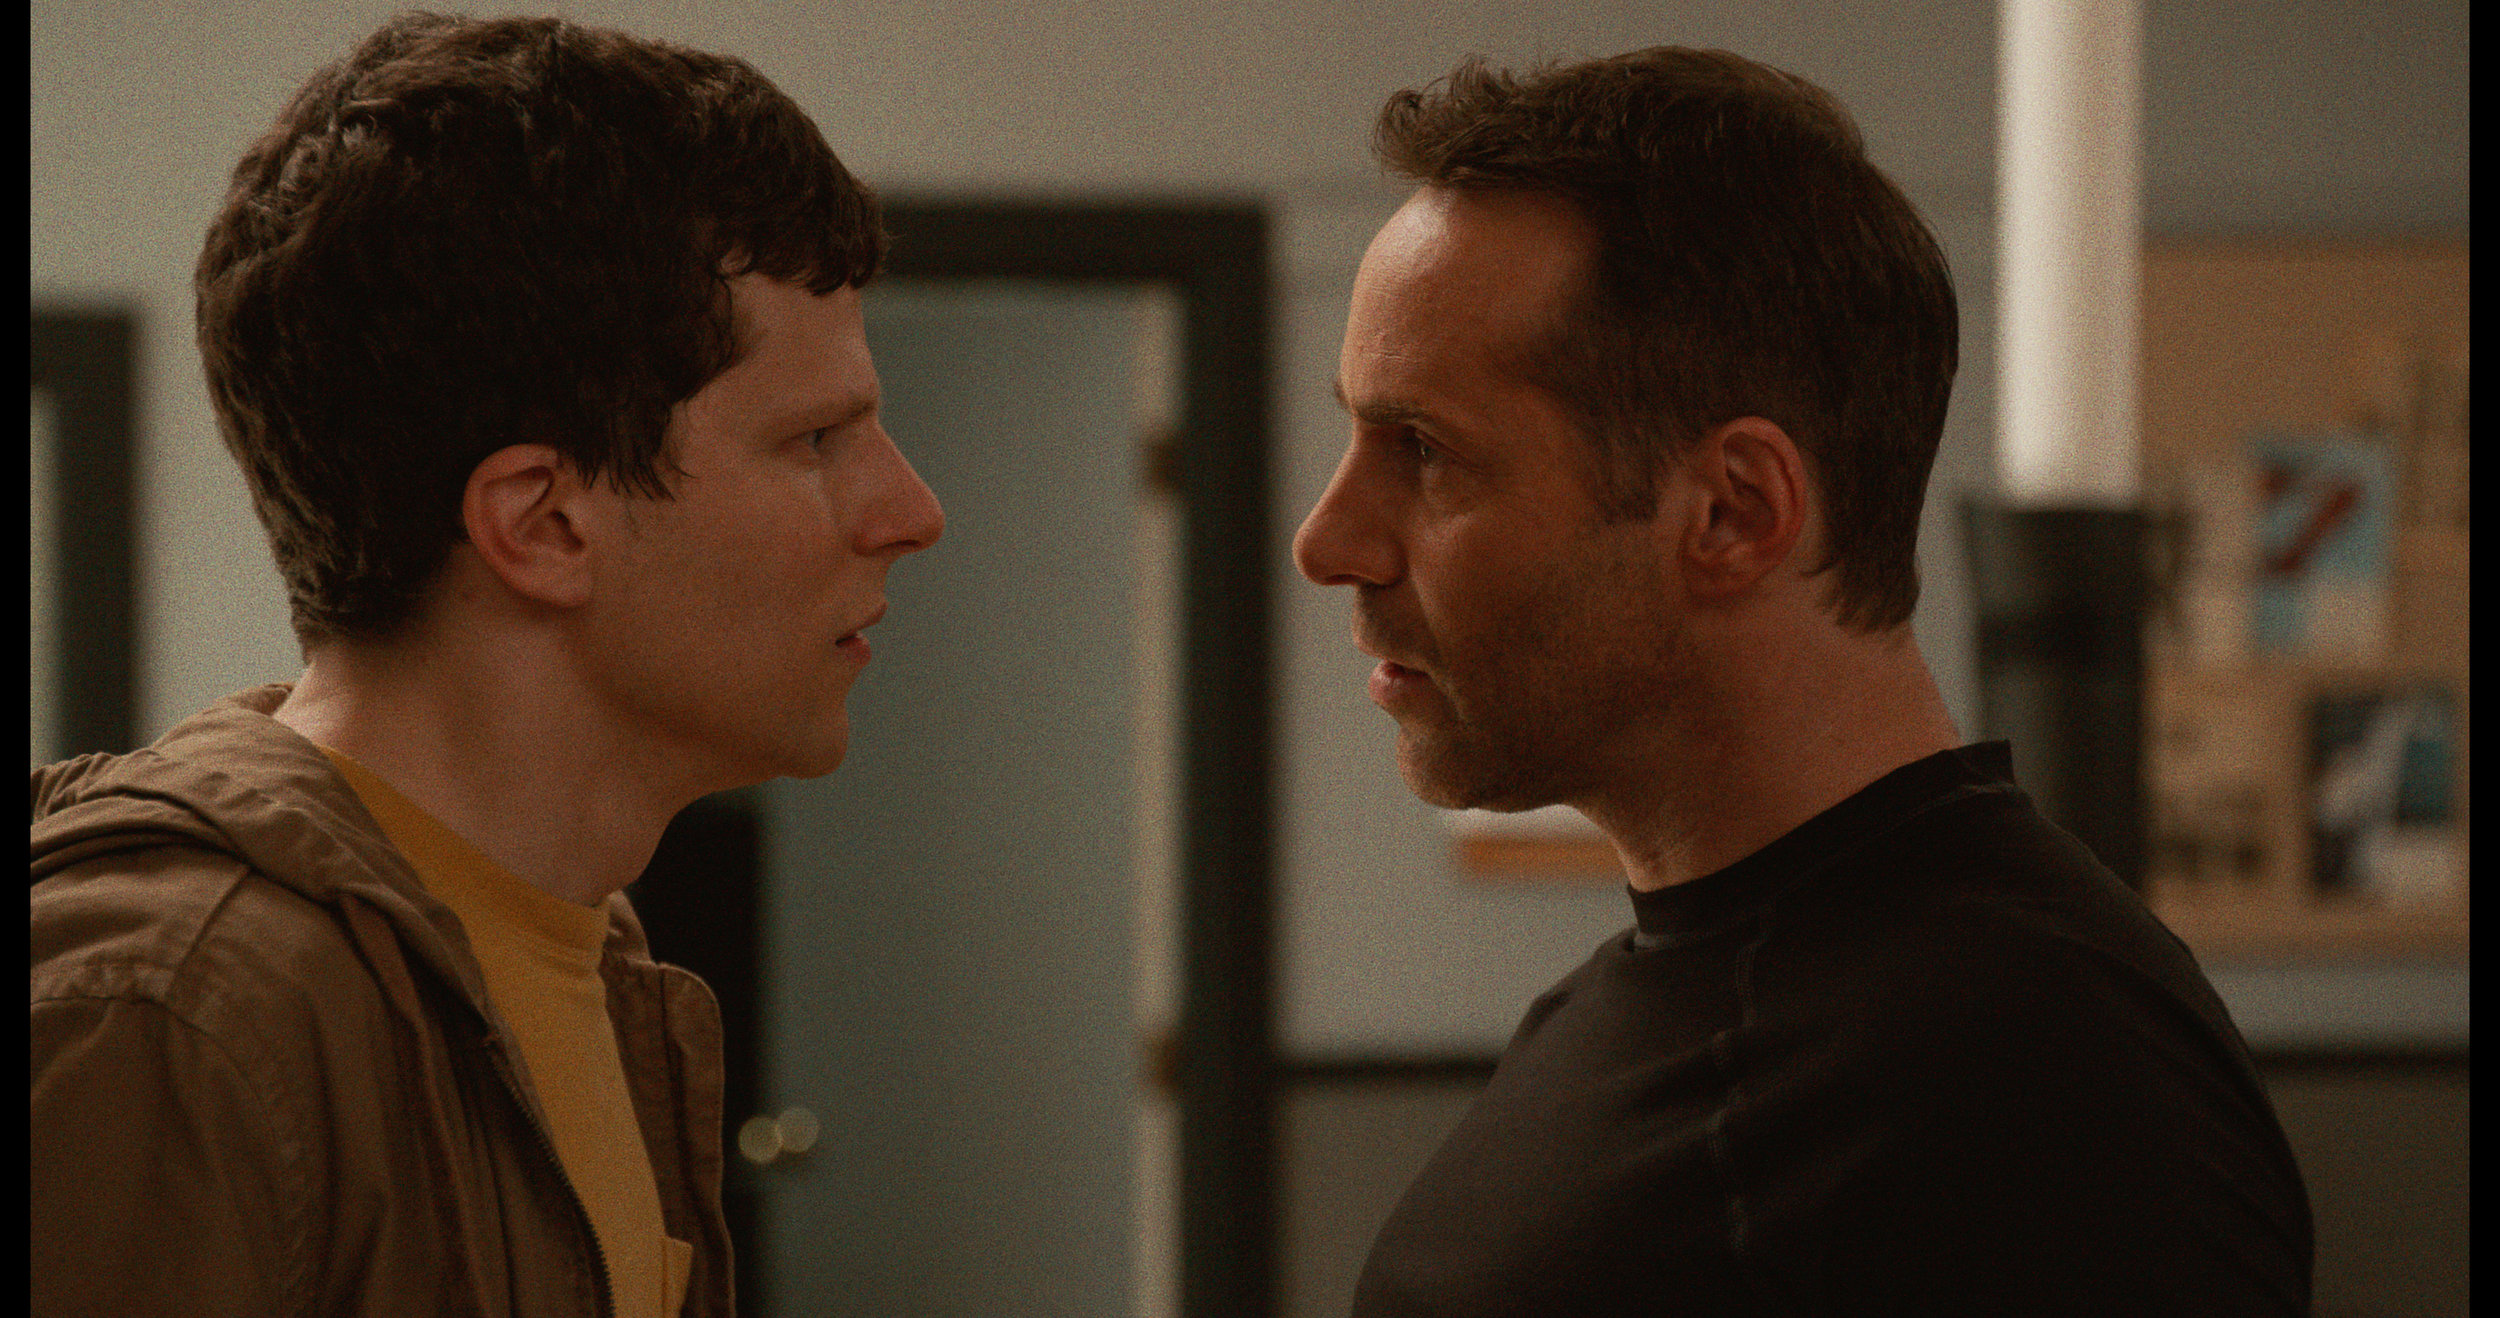 Jesse Eisenberg (left) as 'Casey' and Alessandro Nivola (right) as 'Sensei' in THE ART OF SELF-DEFENSE